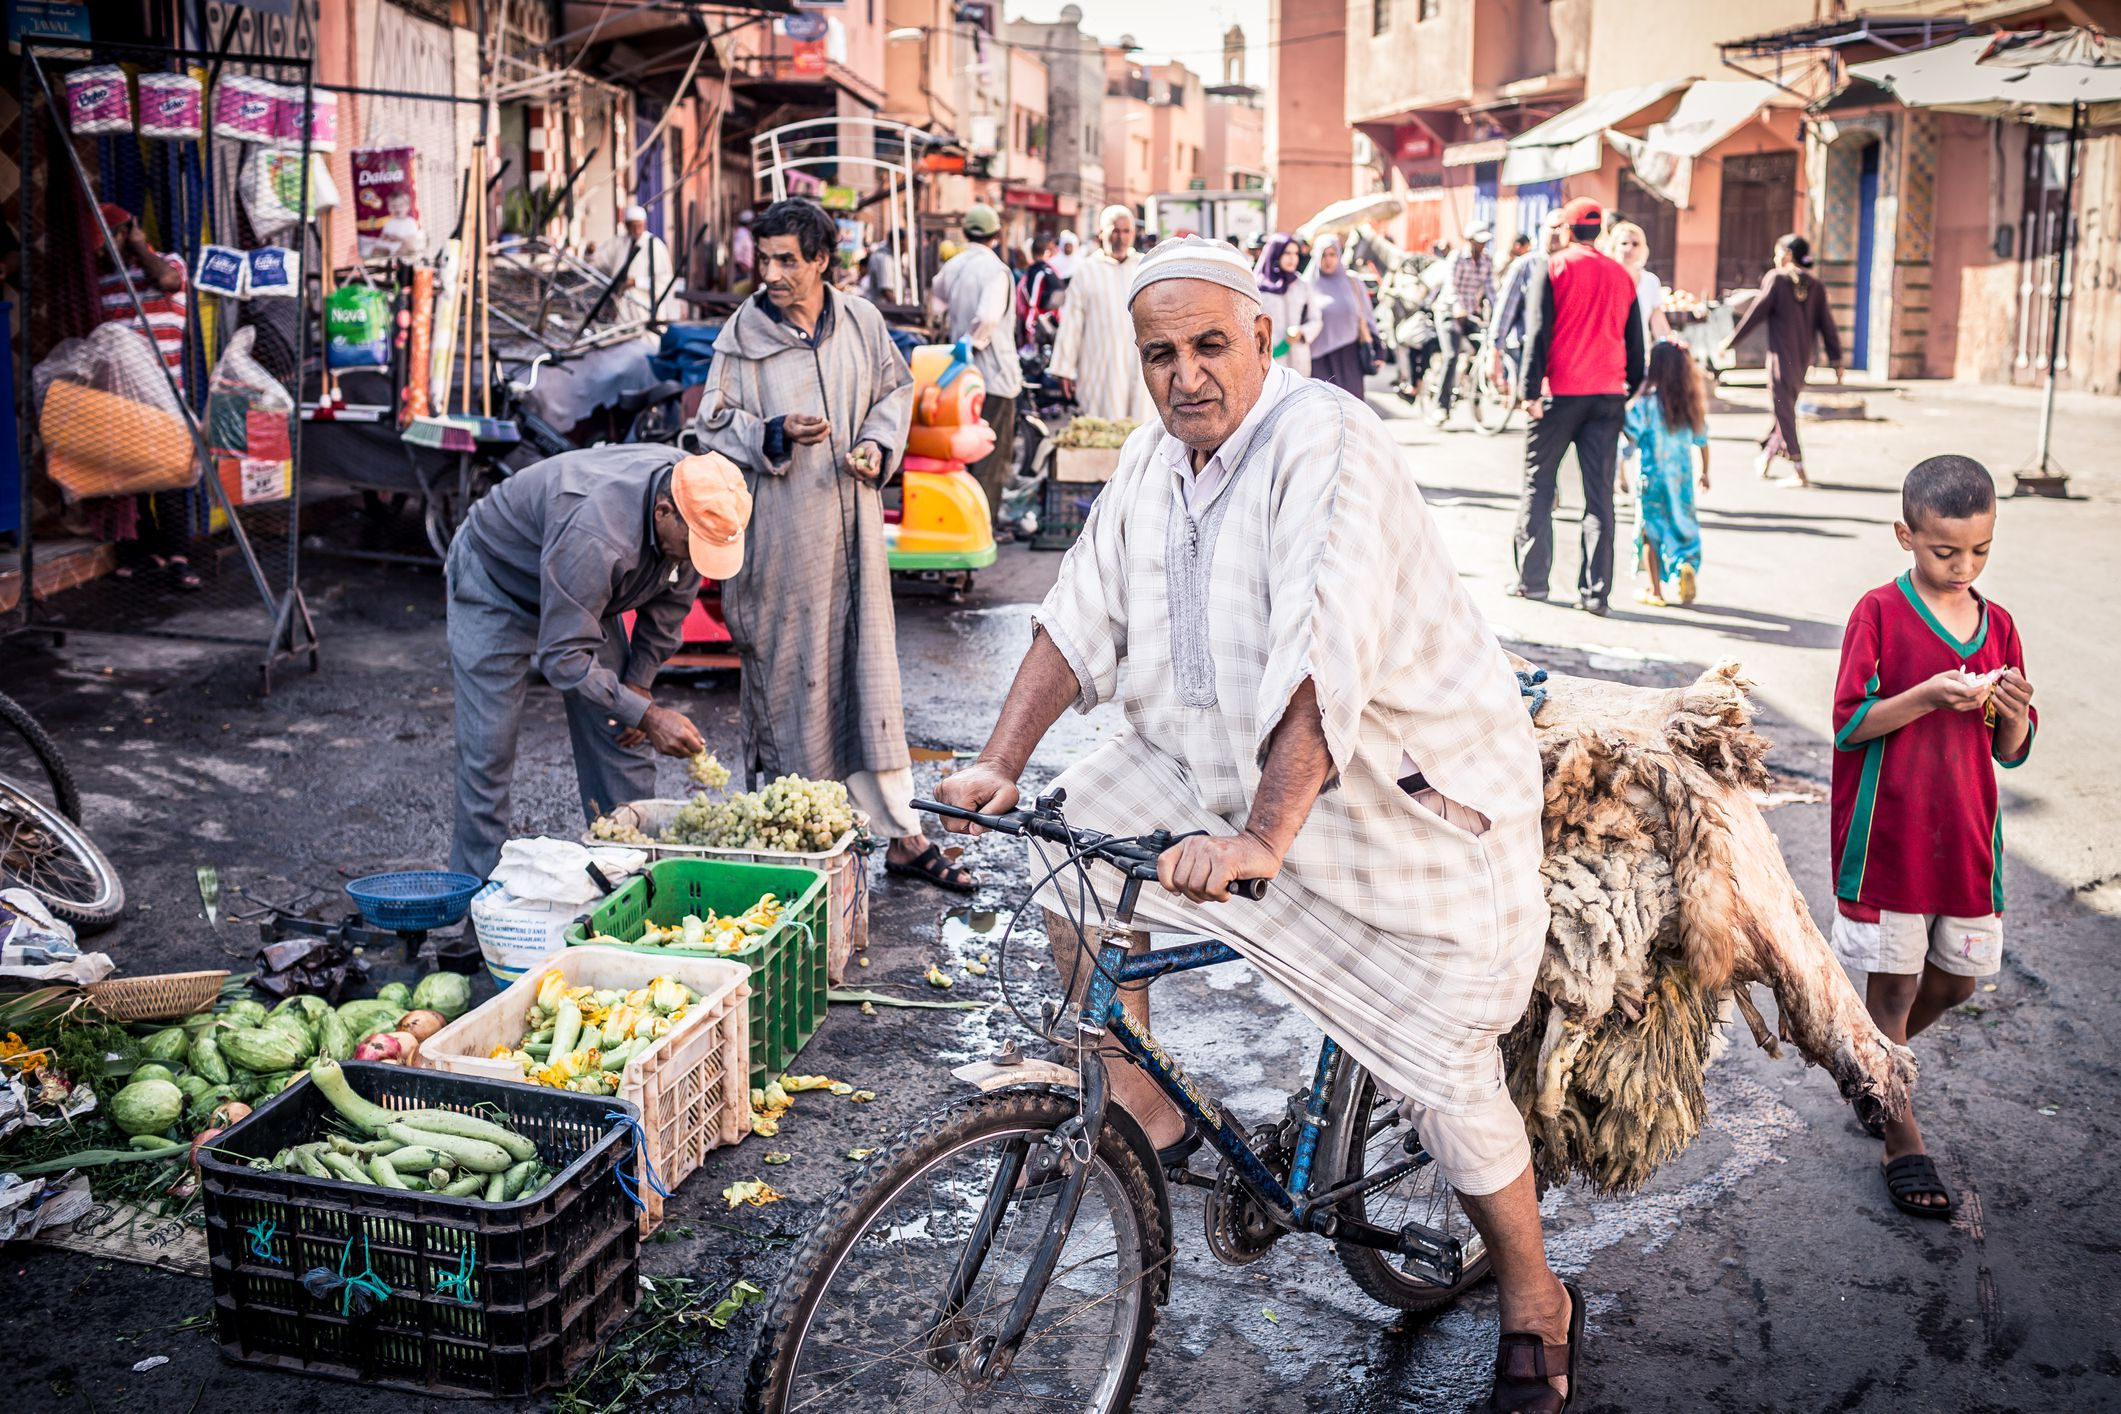 Street scene with Moroccans shopping for Eid ul-Adha